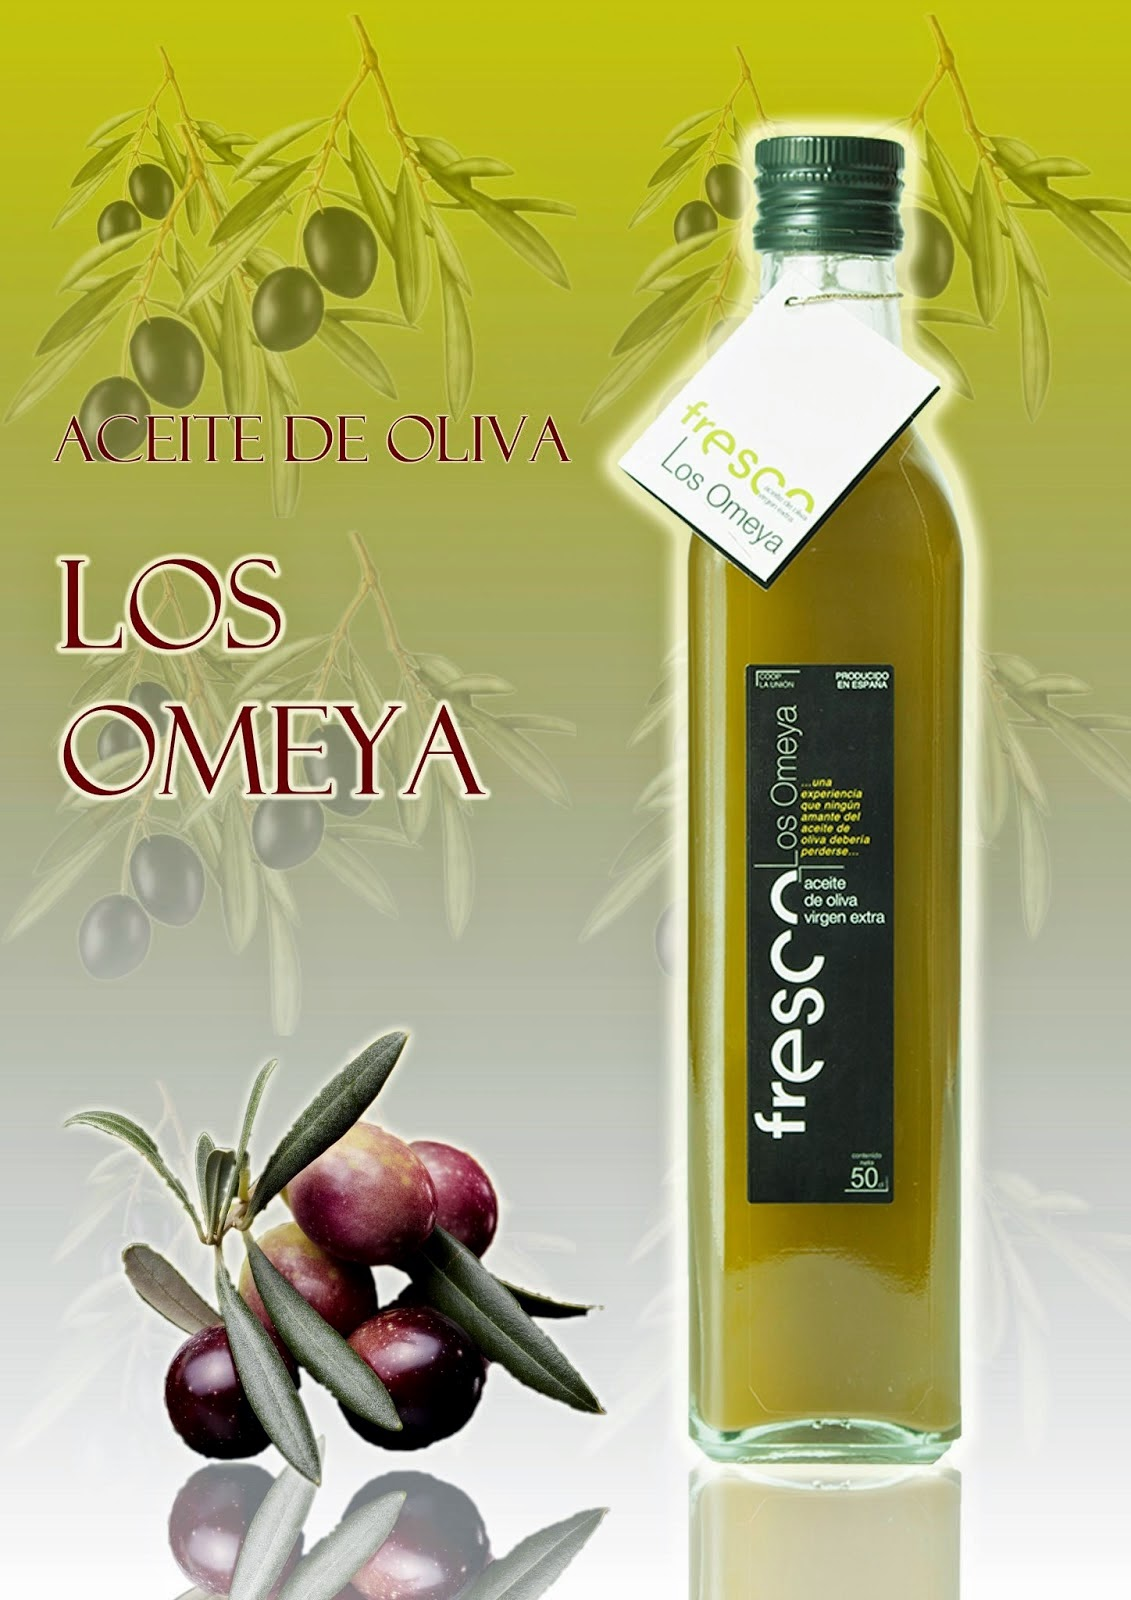 ACEITE DE OLIVA VIRGEN EXTRA